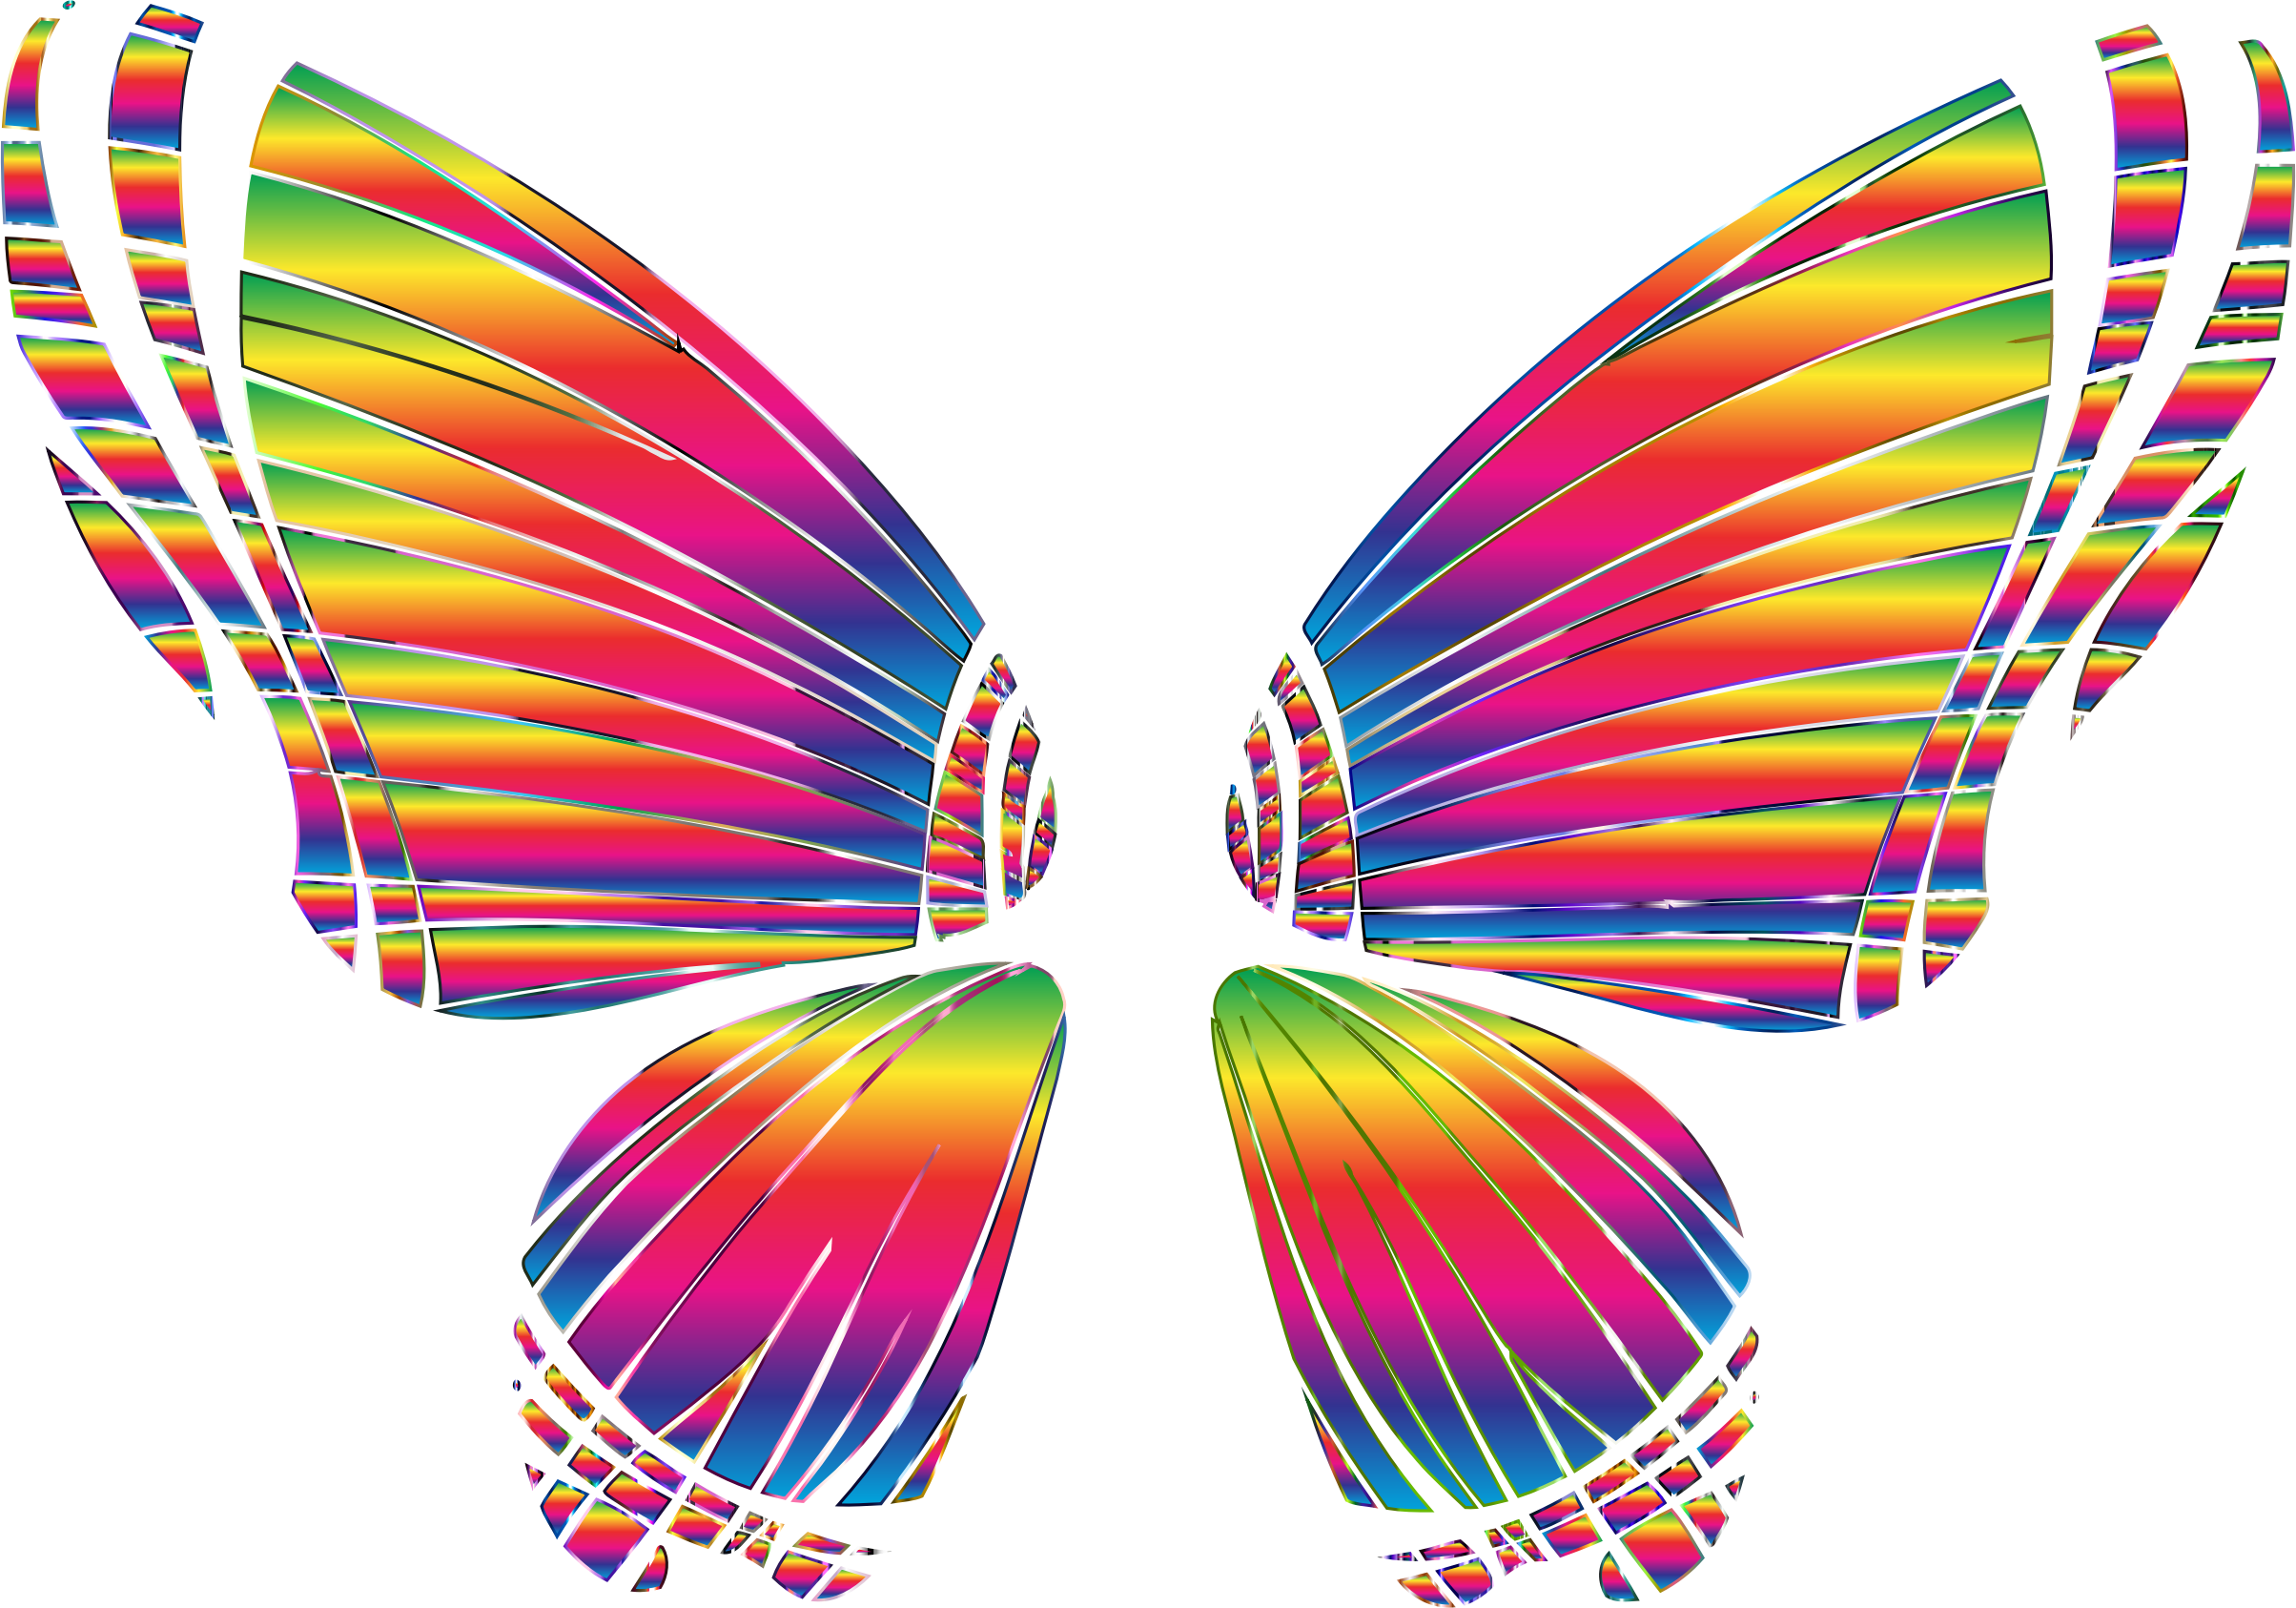 2408x1686 Rgb Butterfly Silhouette 10 8 No Background Bclipart